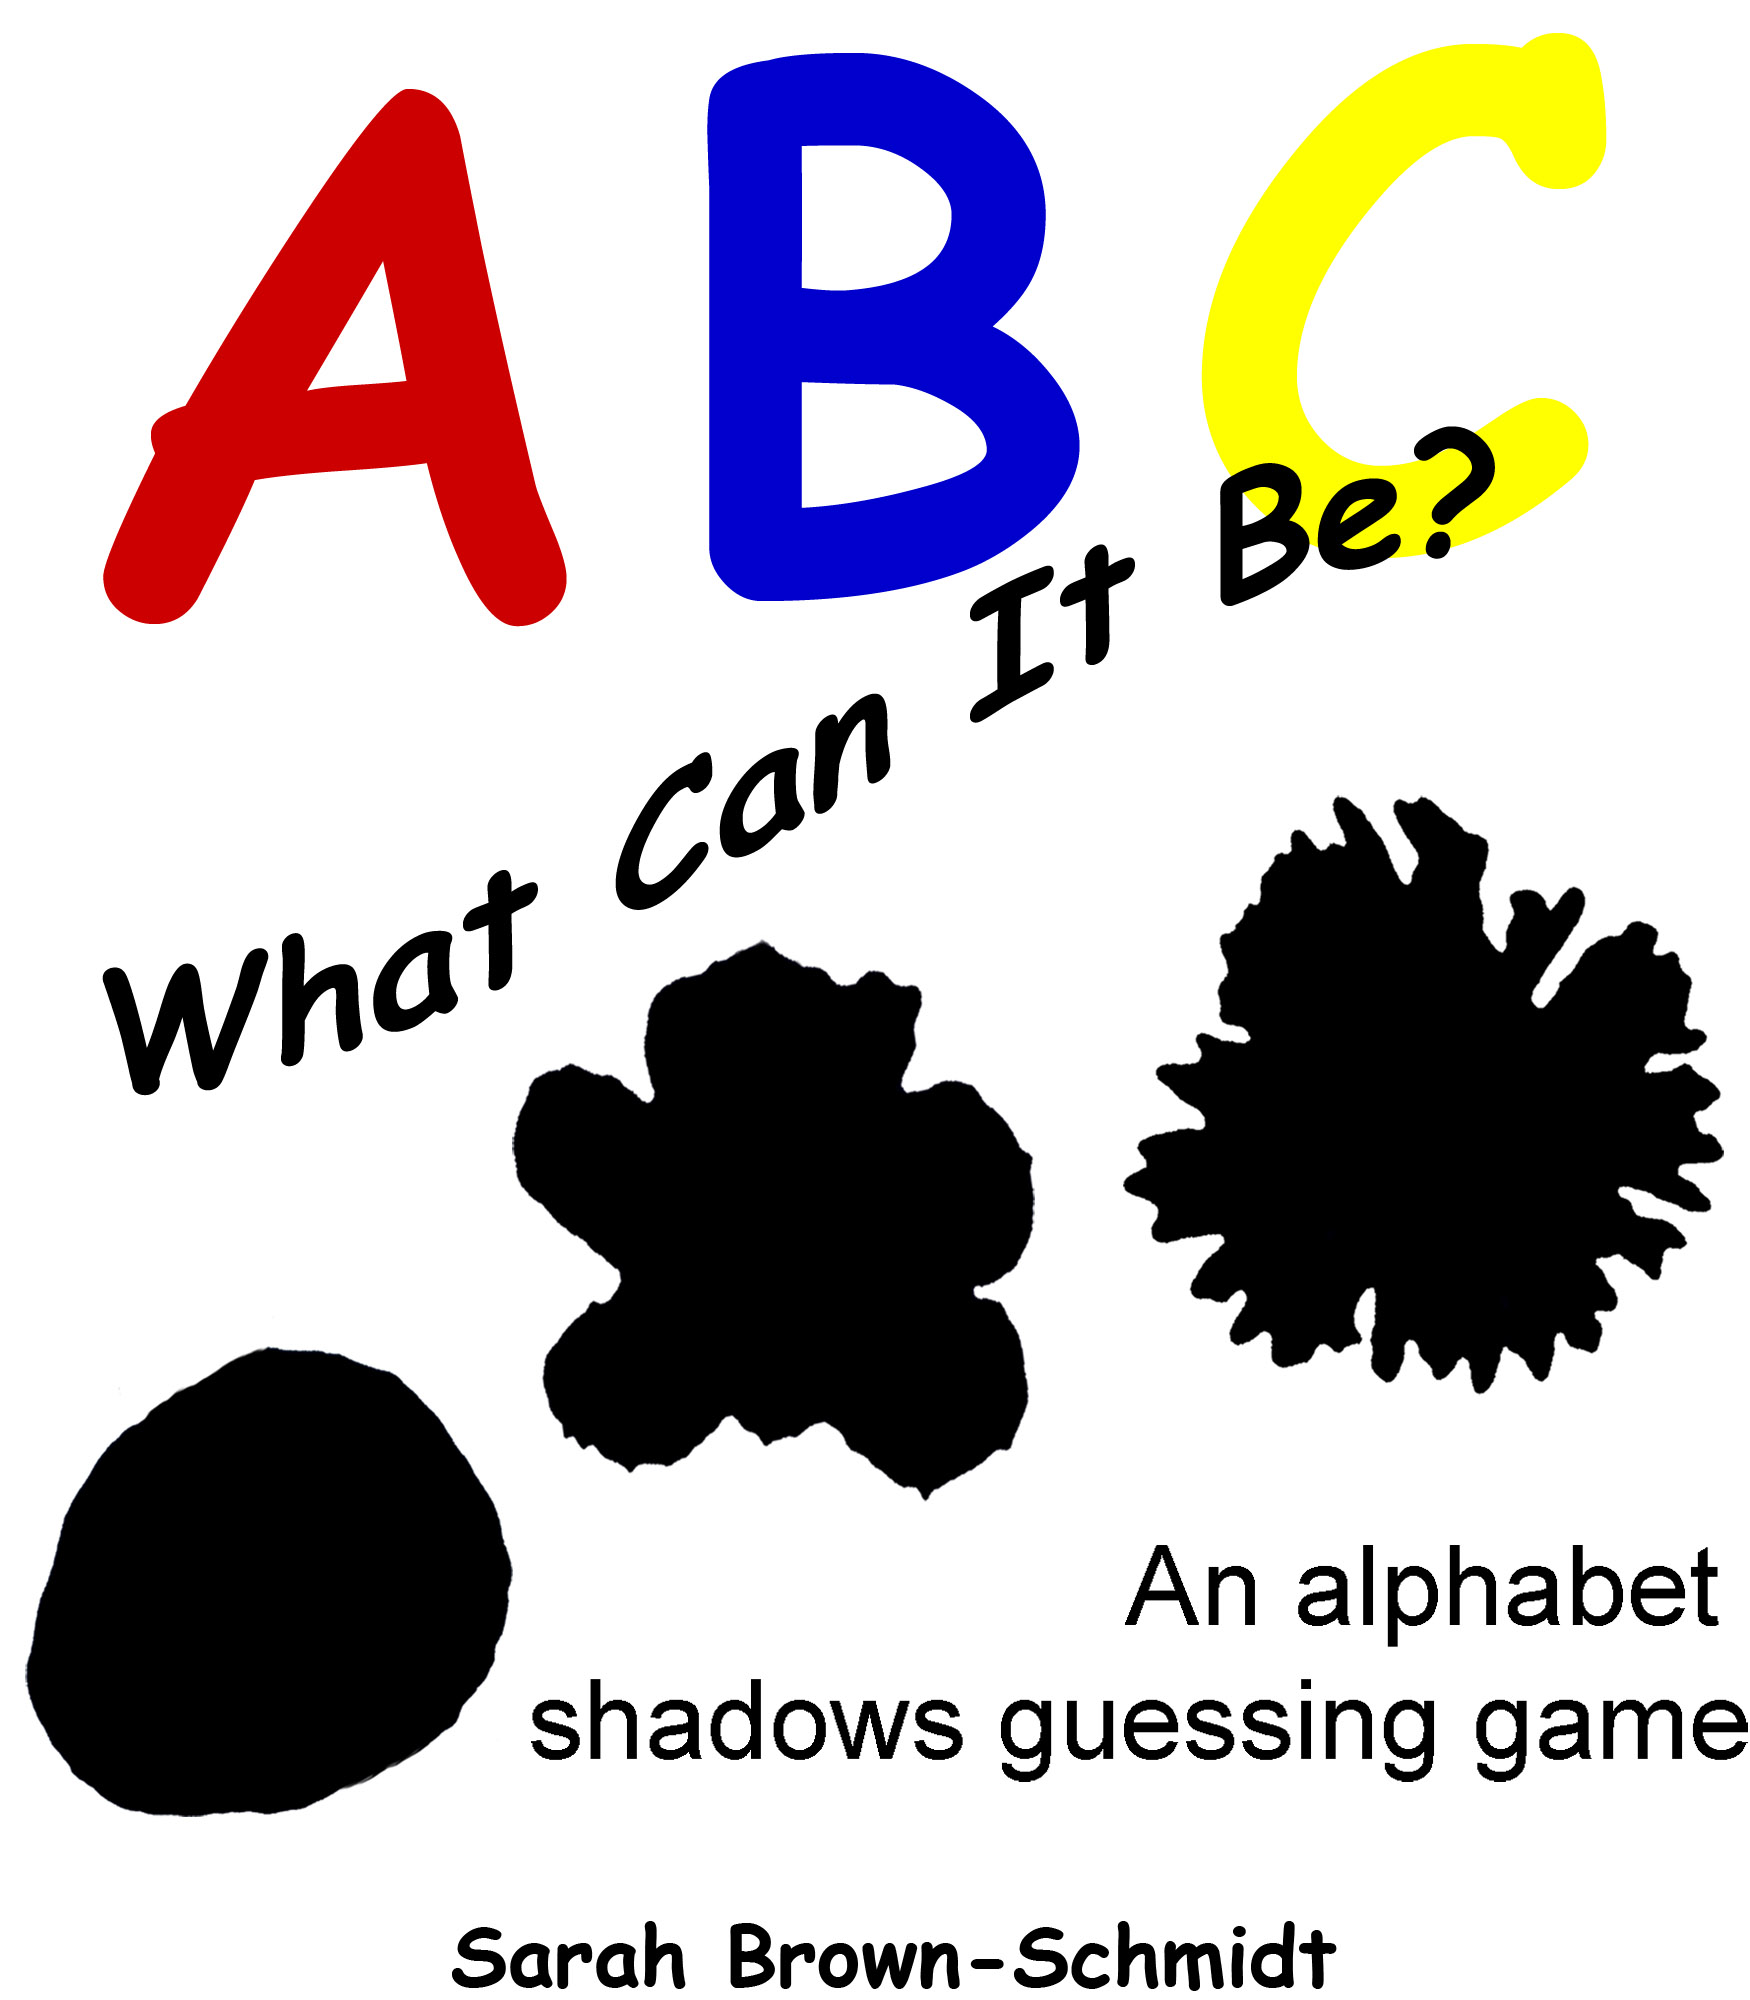 Your site name alphabet shadows i had to wait for a bright sunny day to take the photographs all were shot outside the idea behind the book was to show how different shaped objects cast altavistaventures Image collections